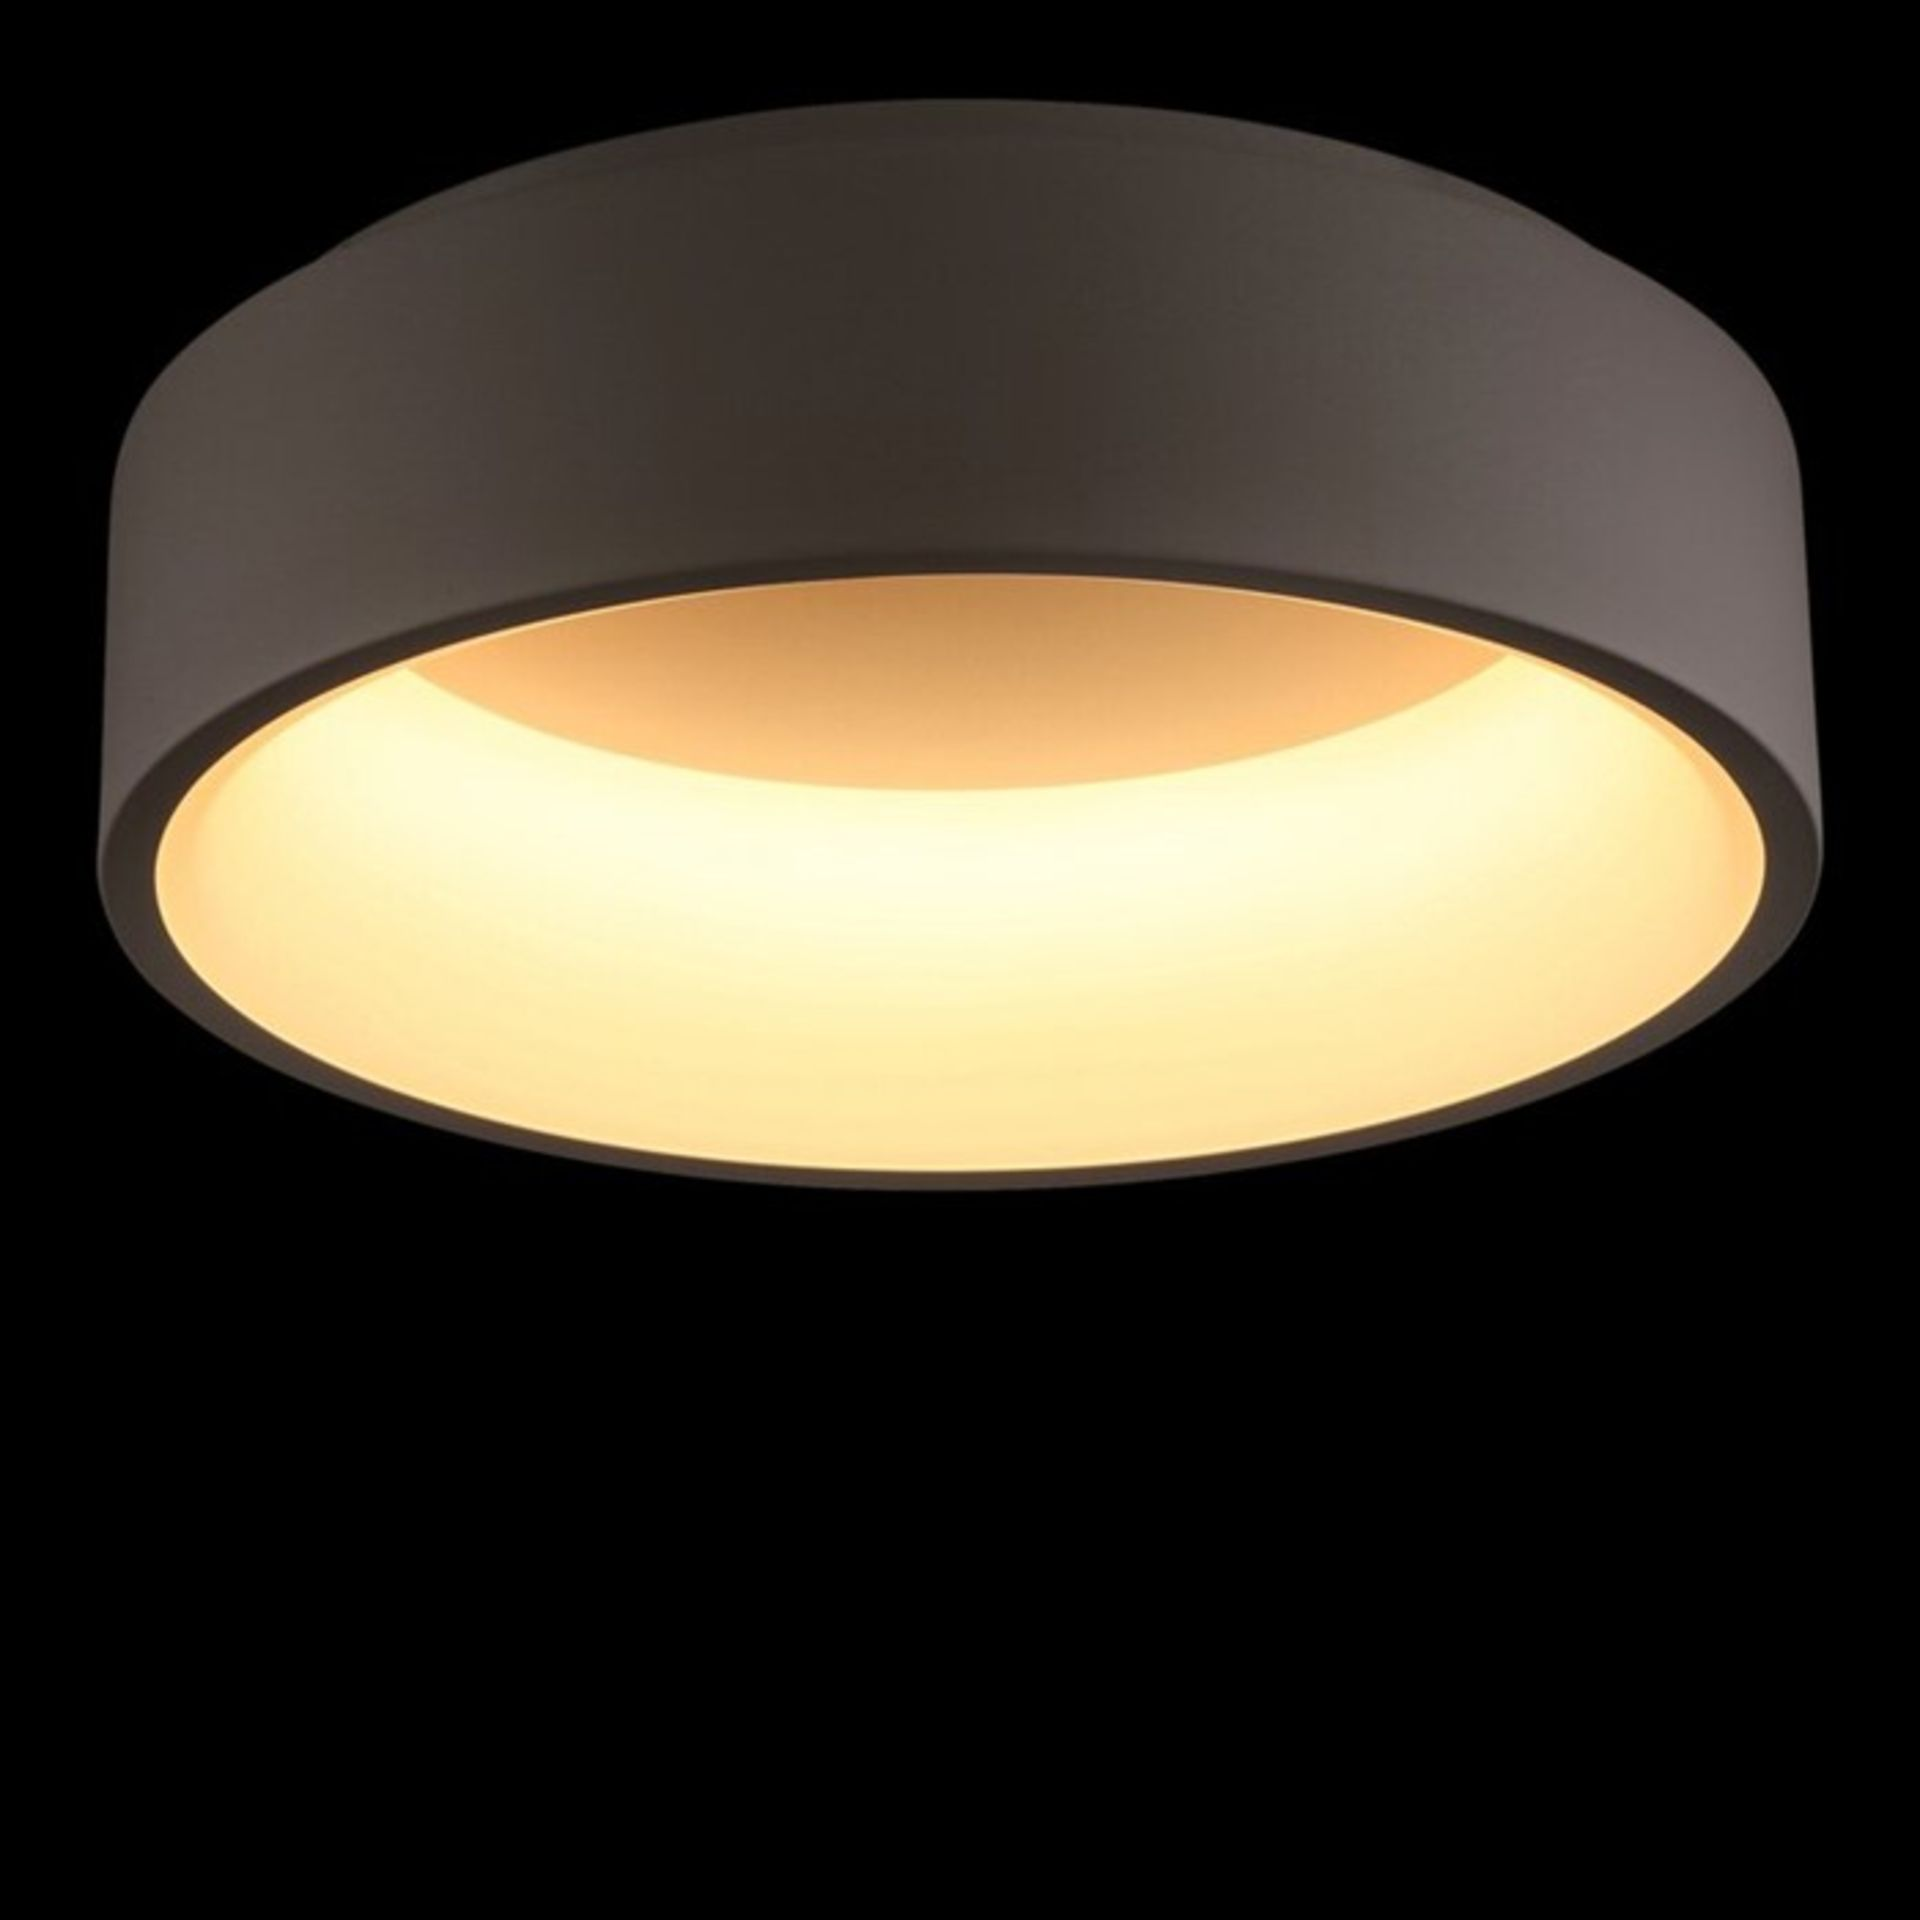 Brayden Studio, Marghera 1-Light LED Flush Mount - RRP£93.99 (EGF6333 - 15630/20) 7F